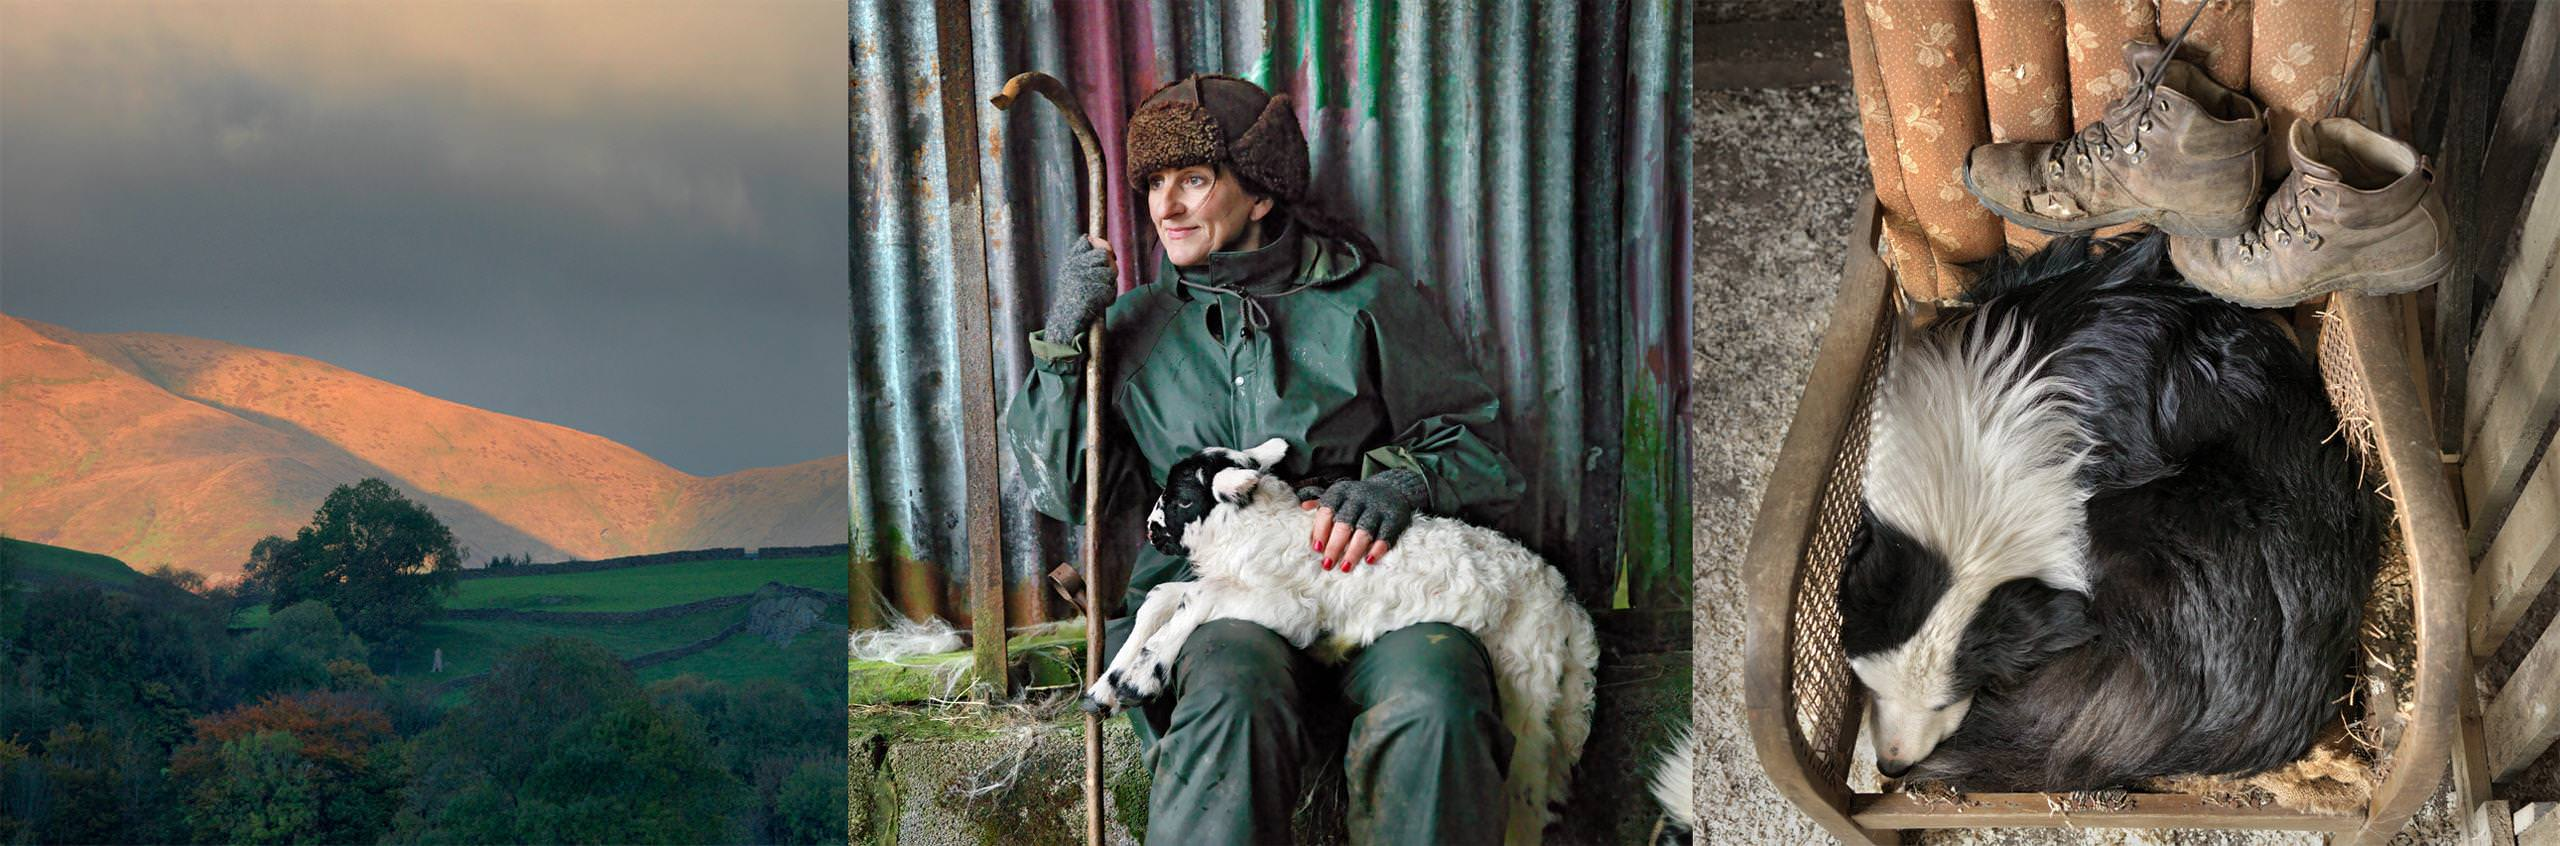 Ian Lawson - Shepherdess